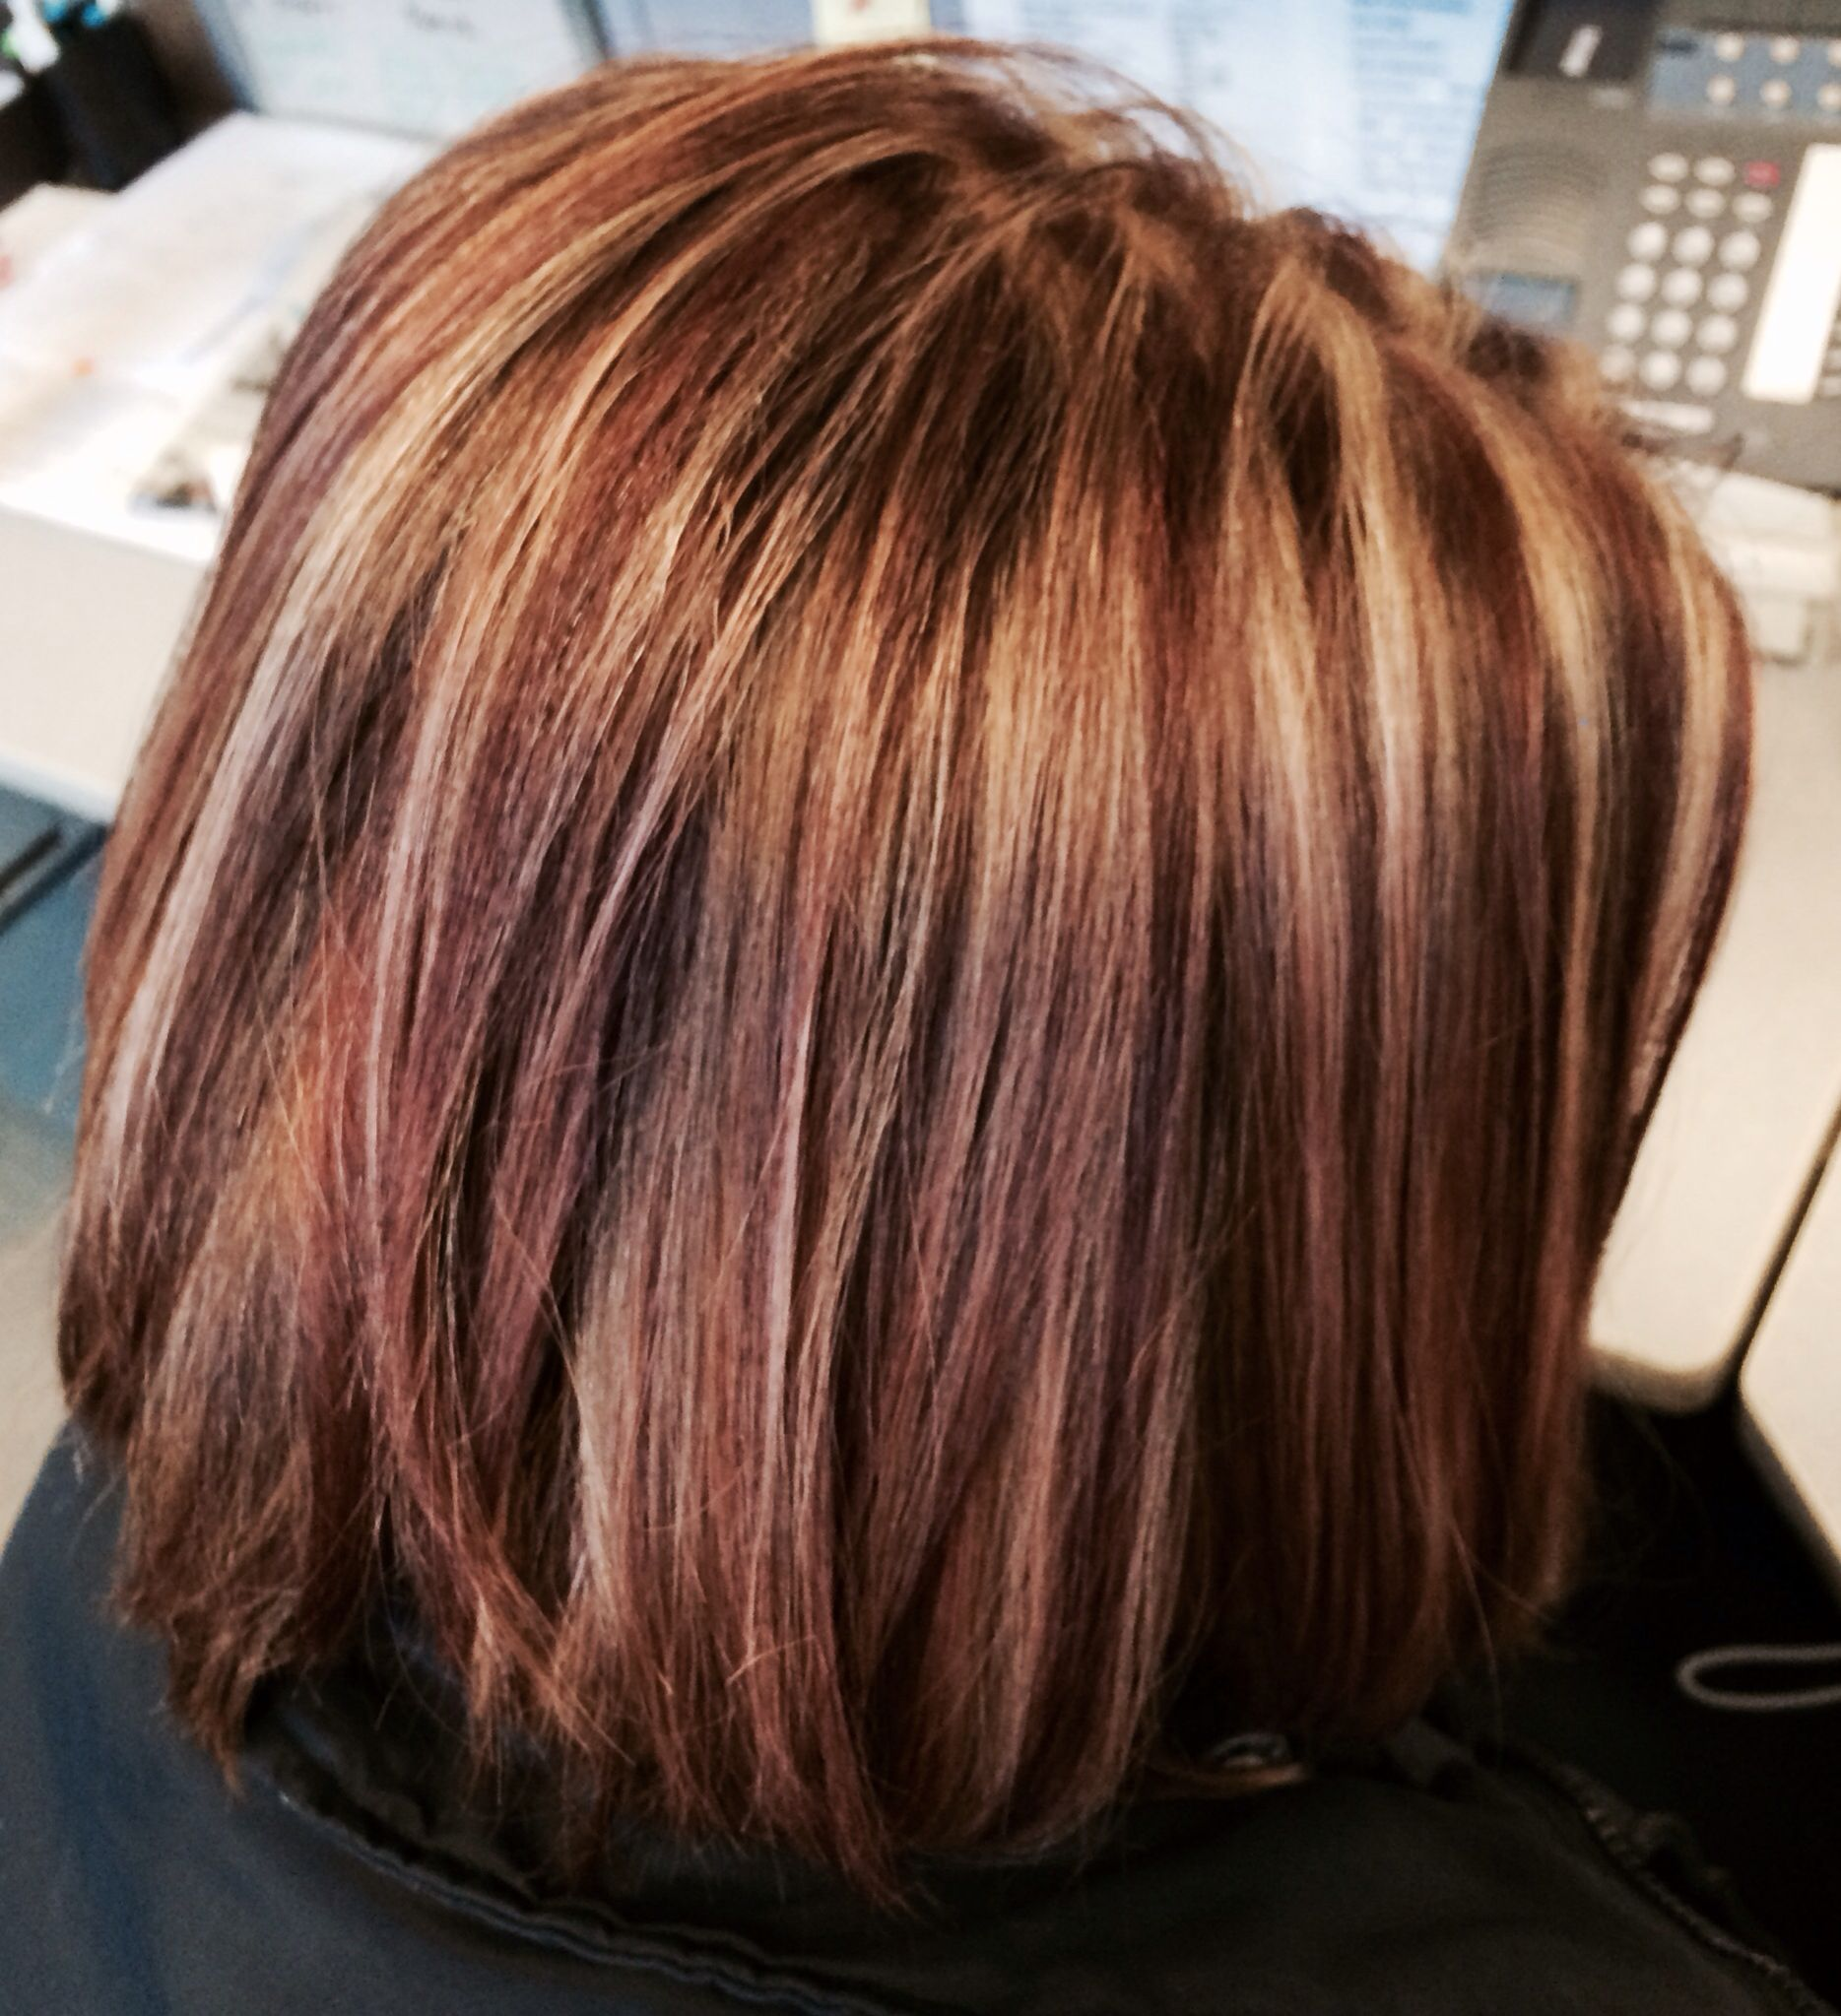 Brown Hair With Caramel Highlights And Red Highlights